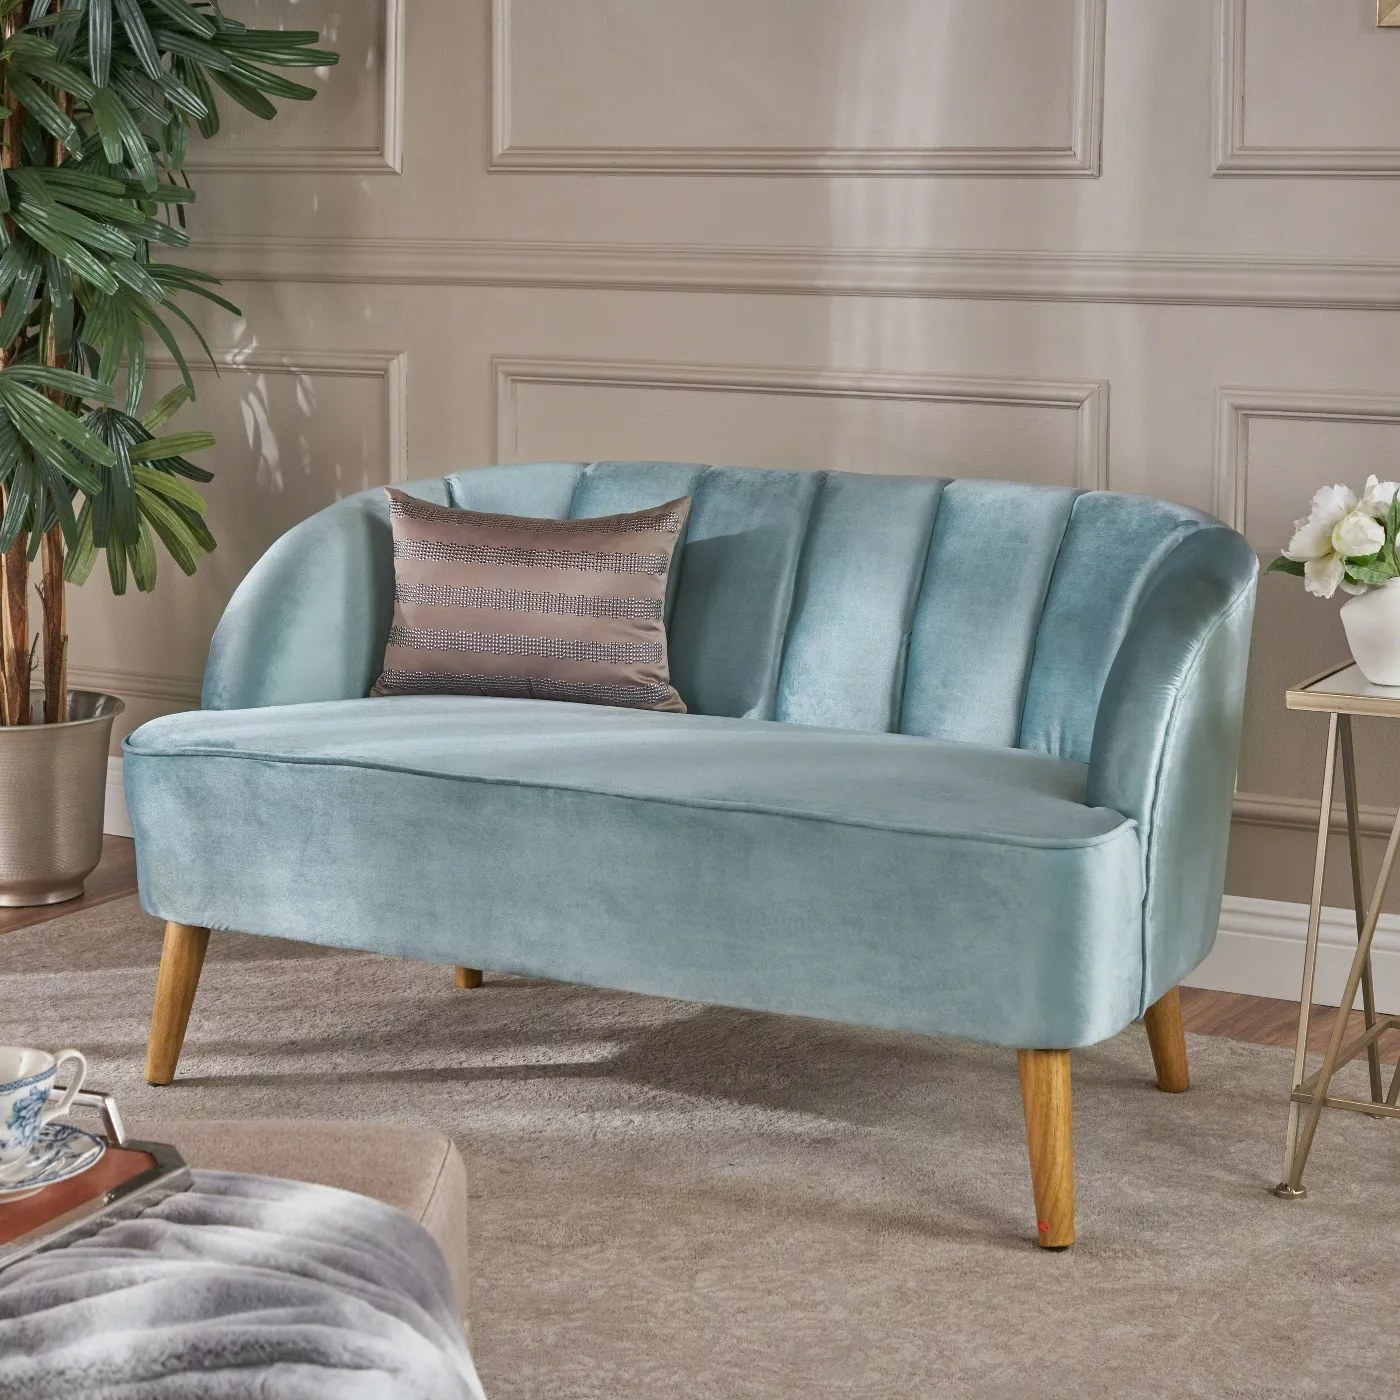 The velvet couch in seafoam blue